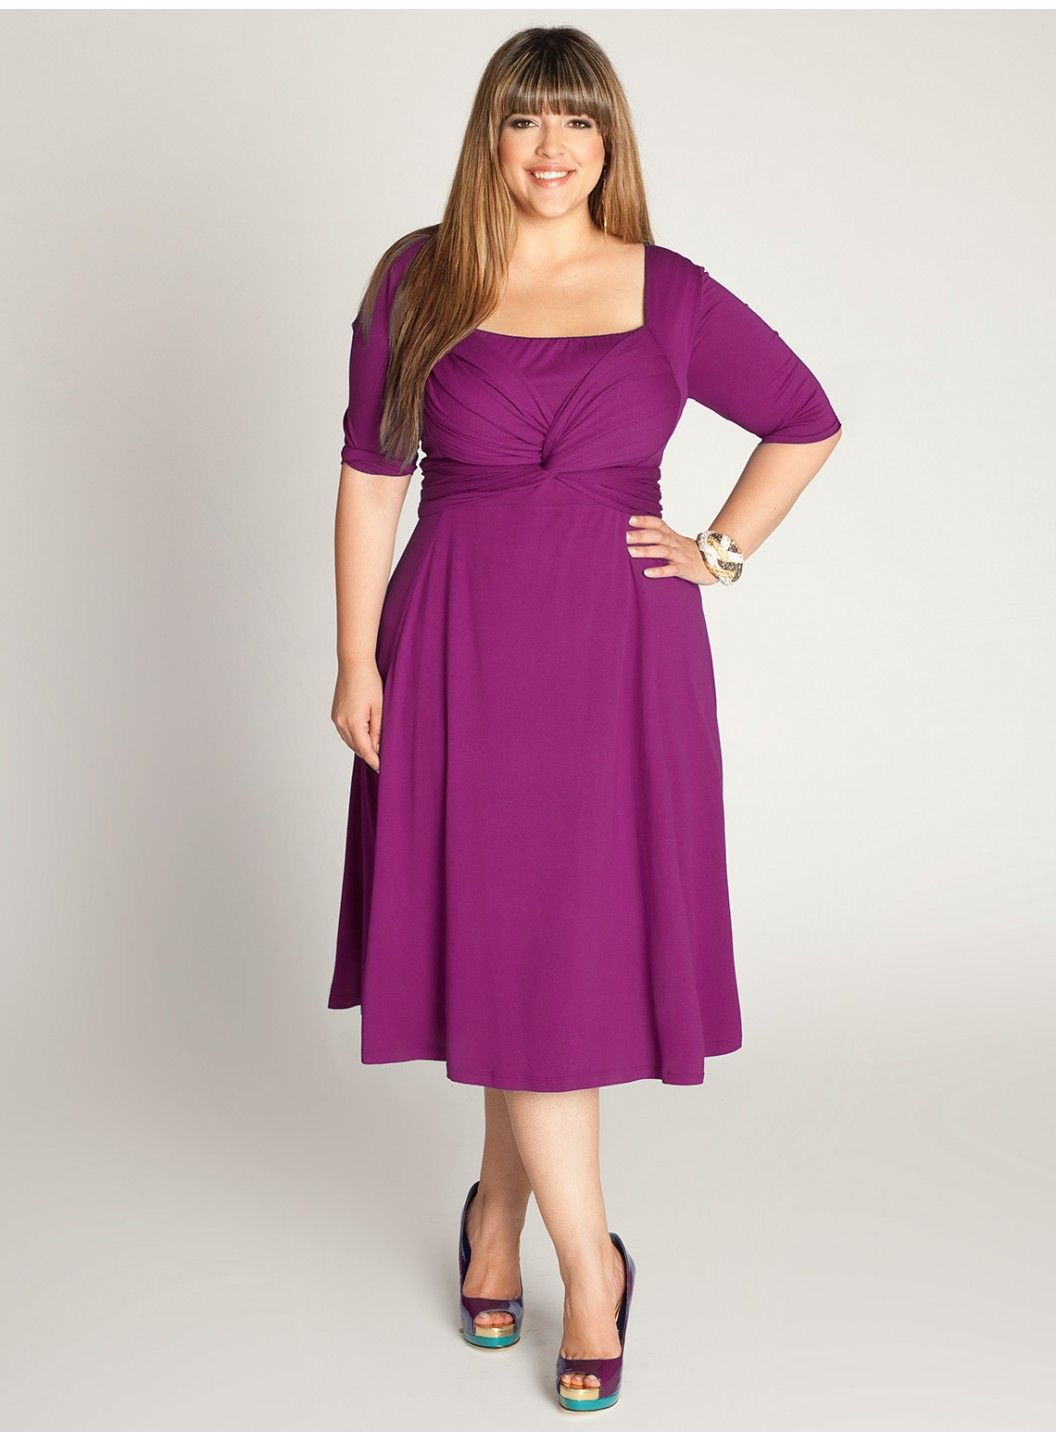 Maddy Dress | Tiffany, Tiffany dresses and Work wear